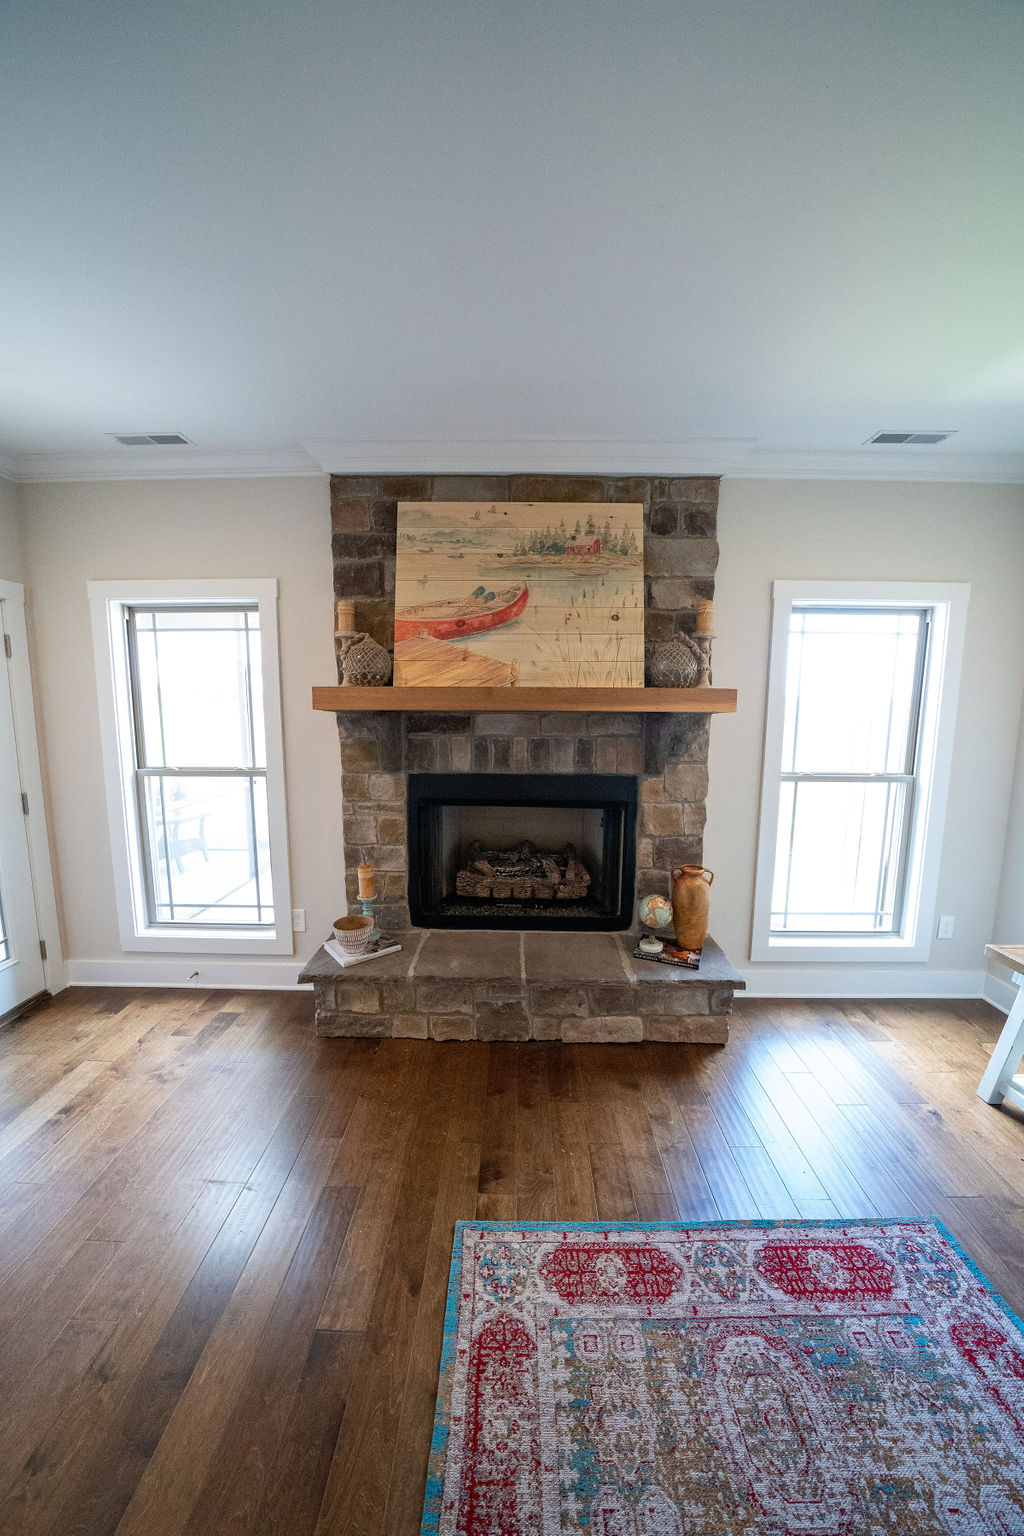 Fireplace and painting in lake villa